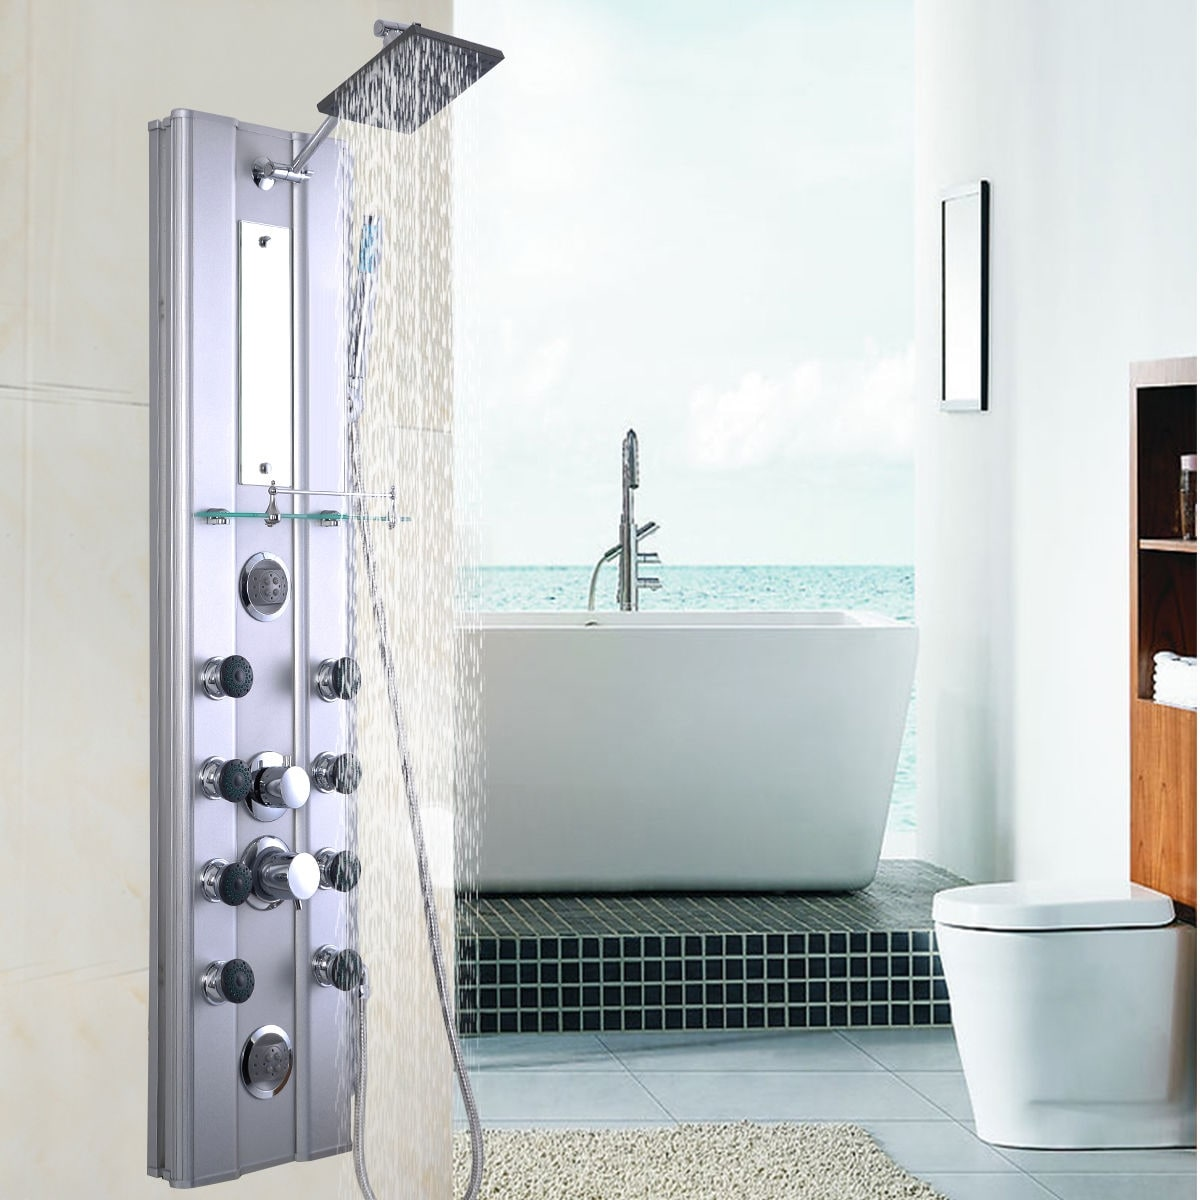 Shop Costway 46u0027u0027 Bathroom Aluminum Shower Panel Thermostatic Tower W/ 10 Massage  Jets   As Pic   Free Shipping Today   Overstock.com   18242538